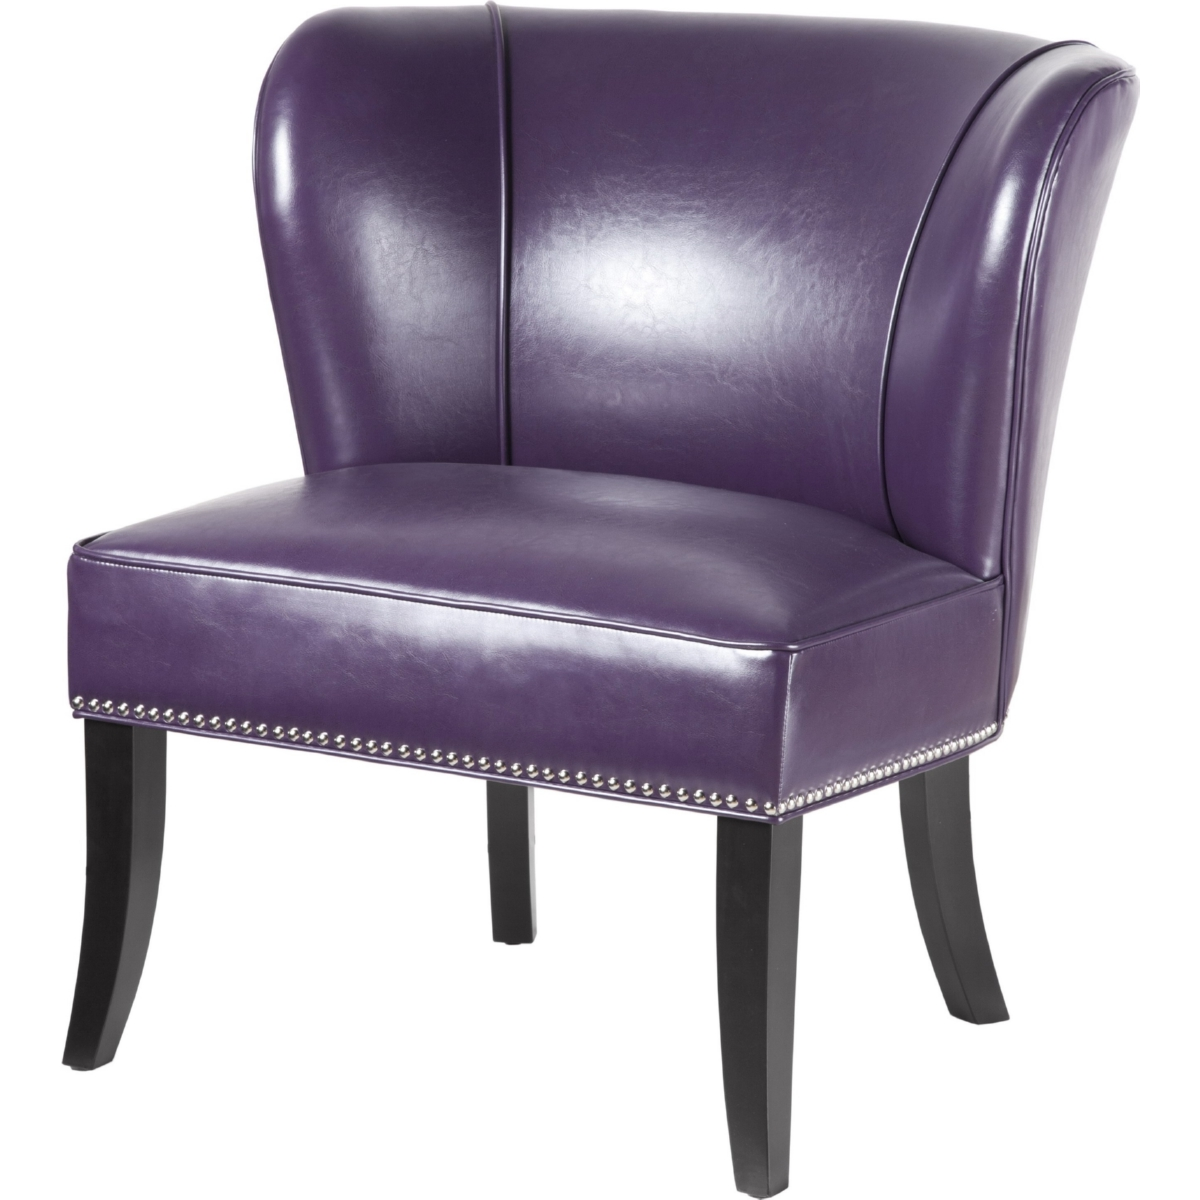 Awe Inspiring Hilton Accent Chair In Purple Leatherette W Nailhead On Black Legs By Madison Park Inzonedesignstudio Interior Chair Design Inzonedesignstudiocom